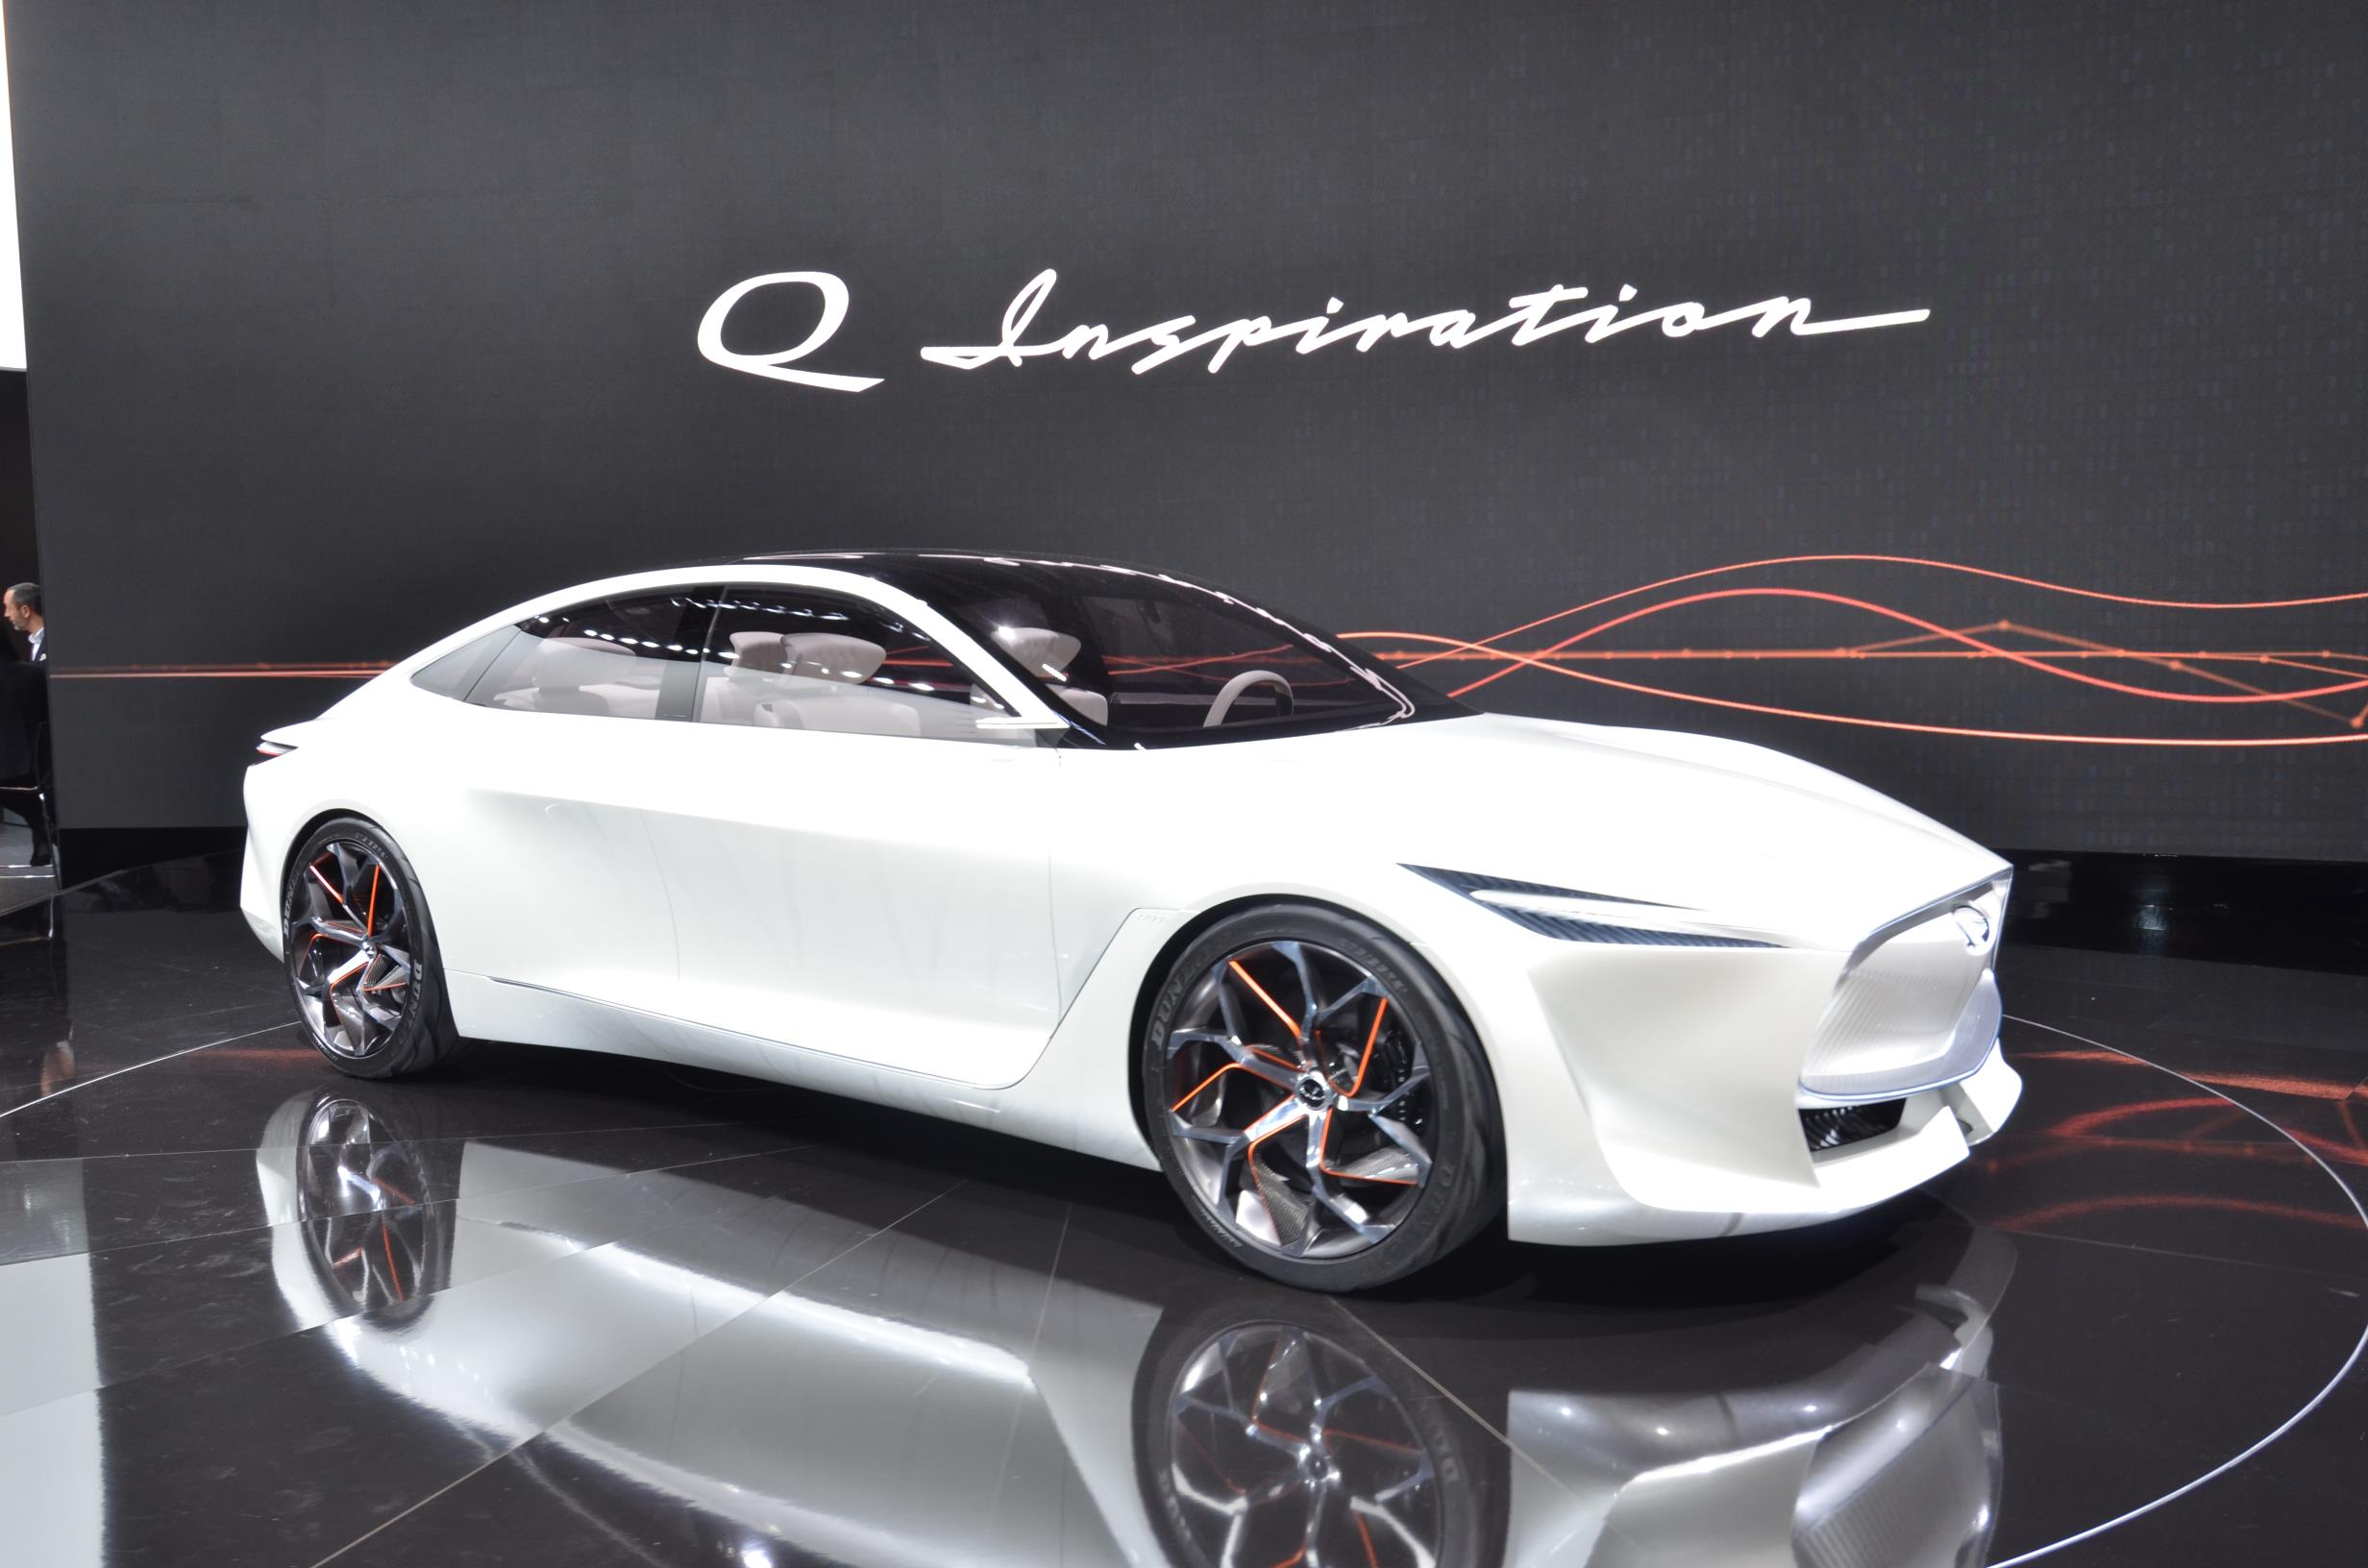 Pebble Beach Car Show >> Infiniti Electrified Performance Concept Car to Show at Pebble Beach - autoevolution